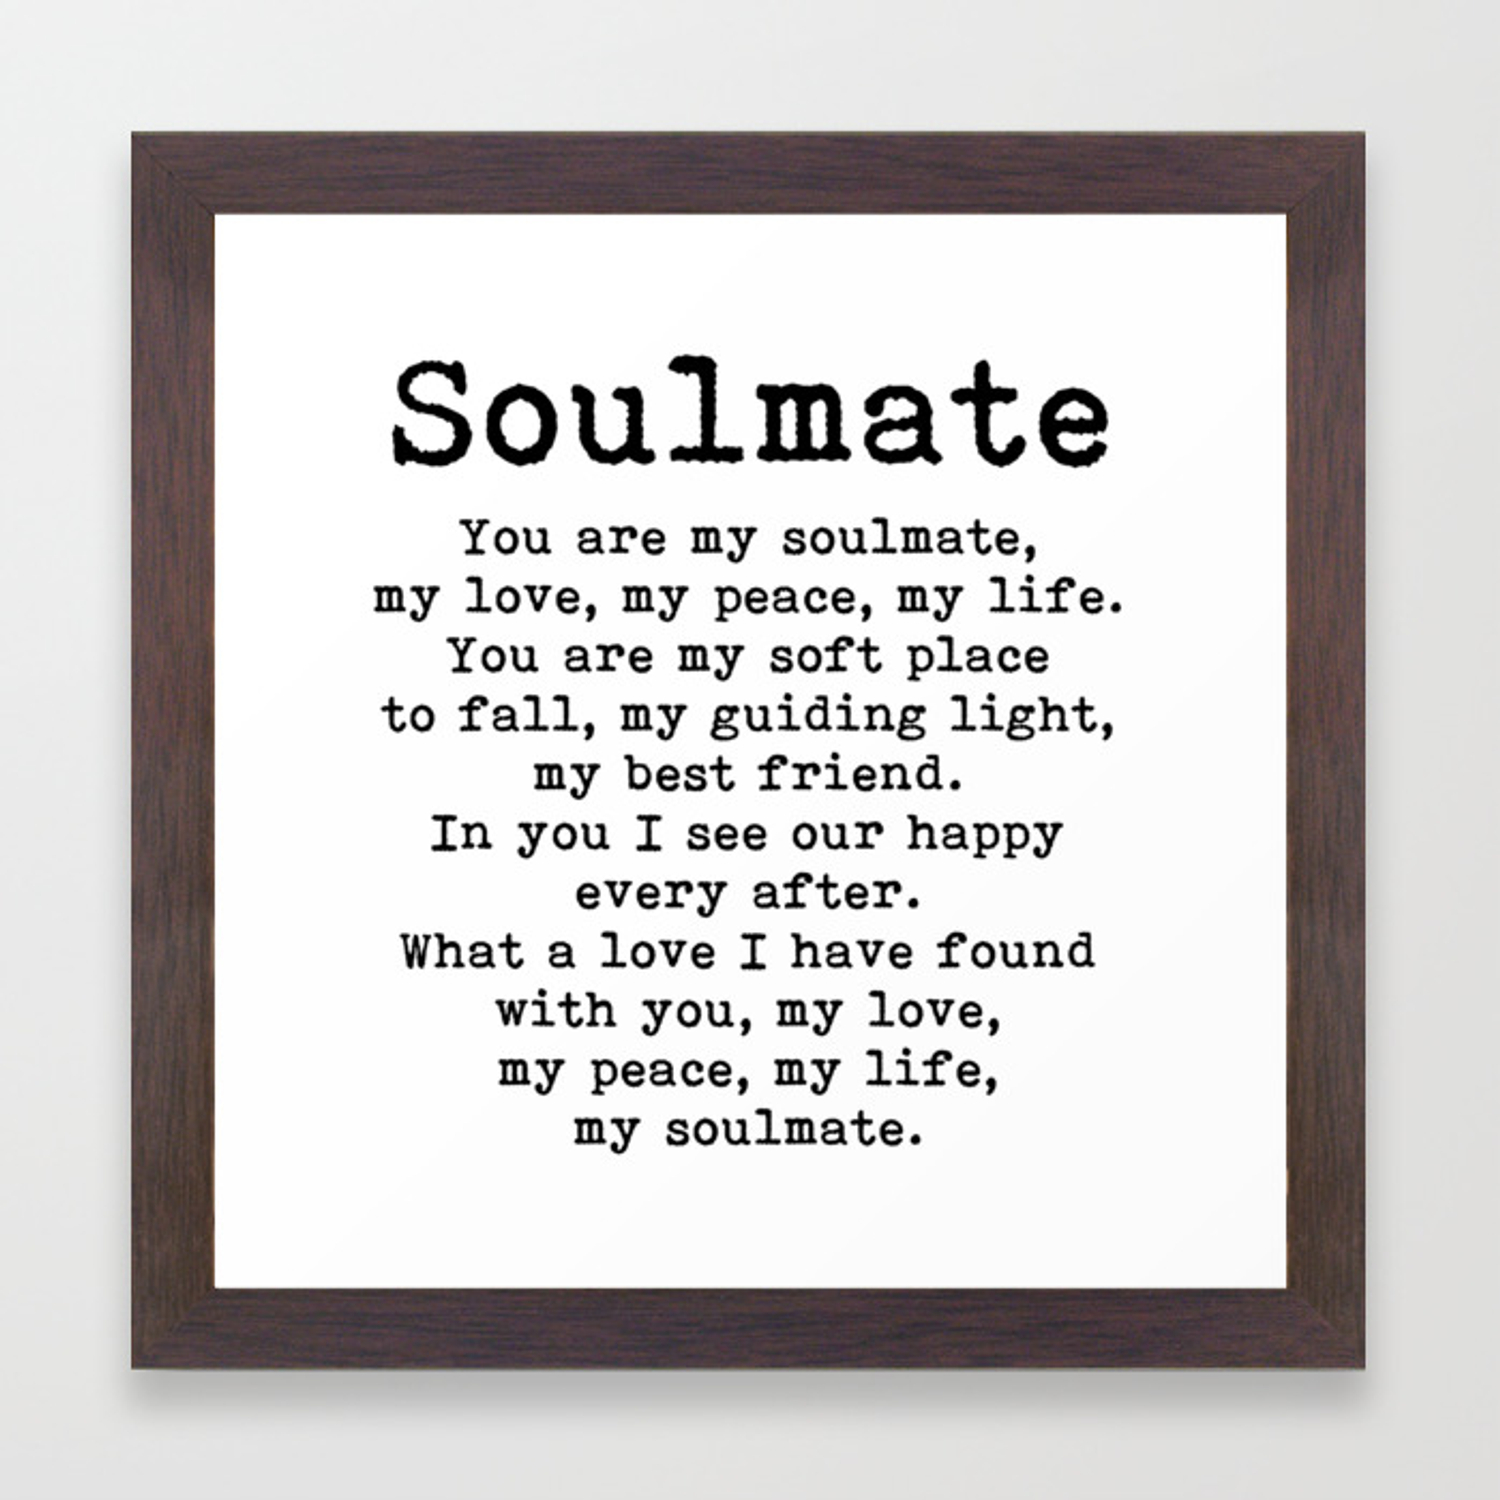 You are my soulmate poem